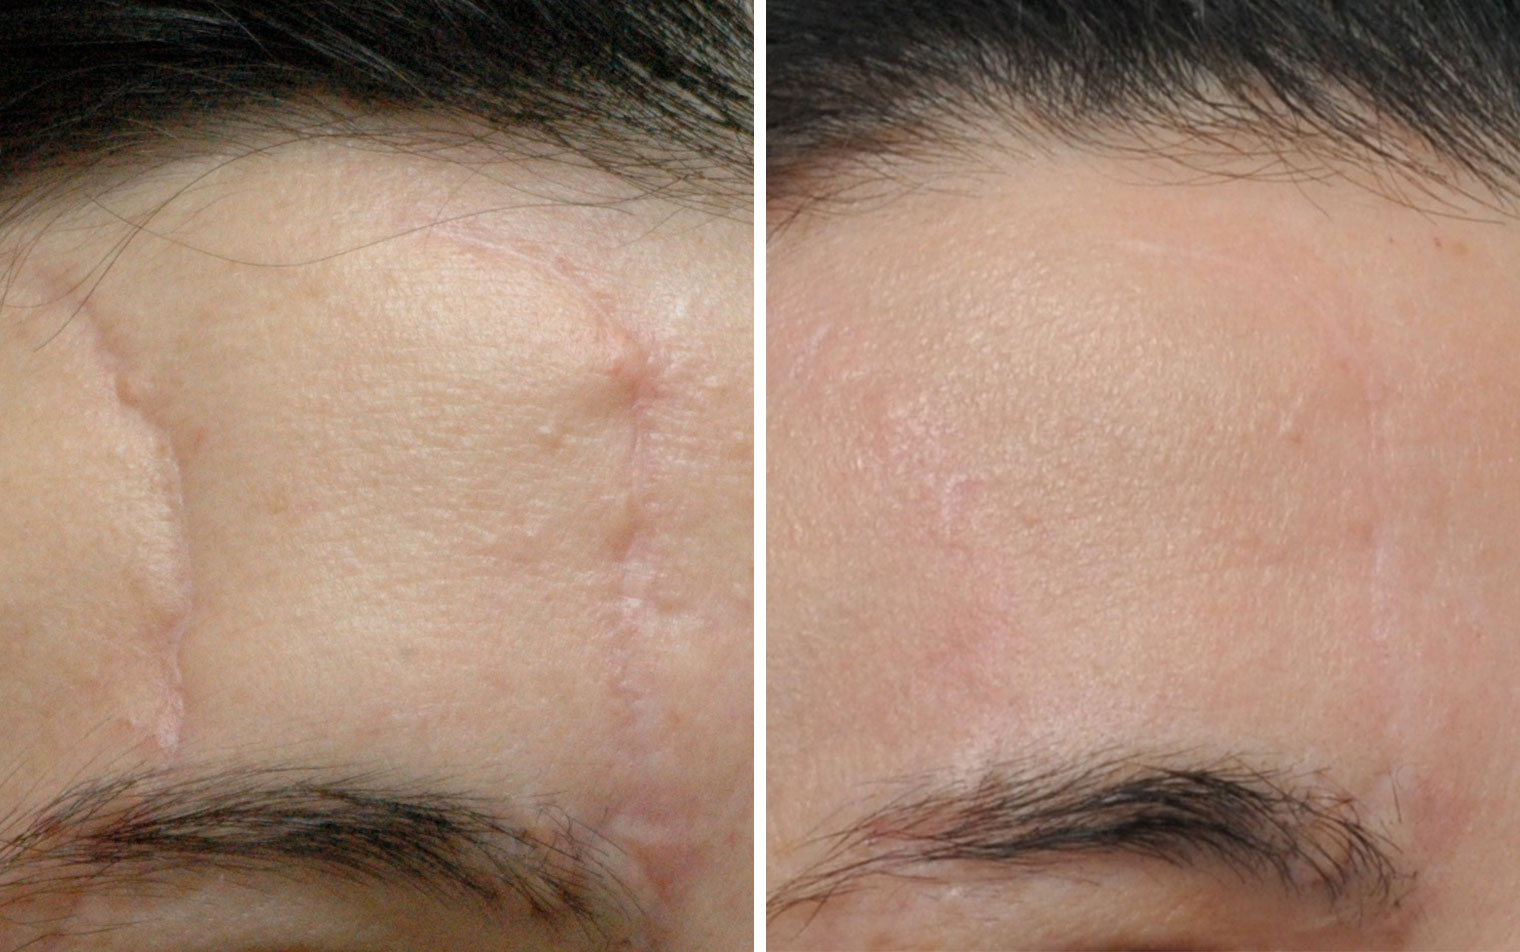 Scar removal annapolis md scar revision severna park another male patient with the scar on neck was treated using the running zplasty technique and lastly a female patient who had skin cancer reconstruction sciox Choice Image